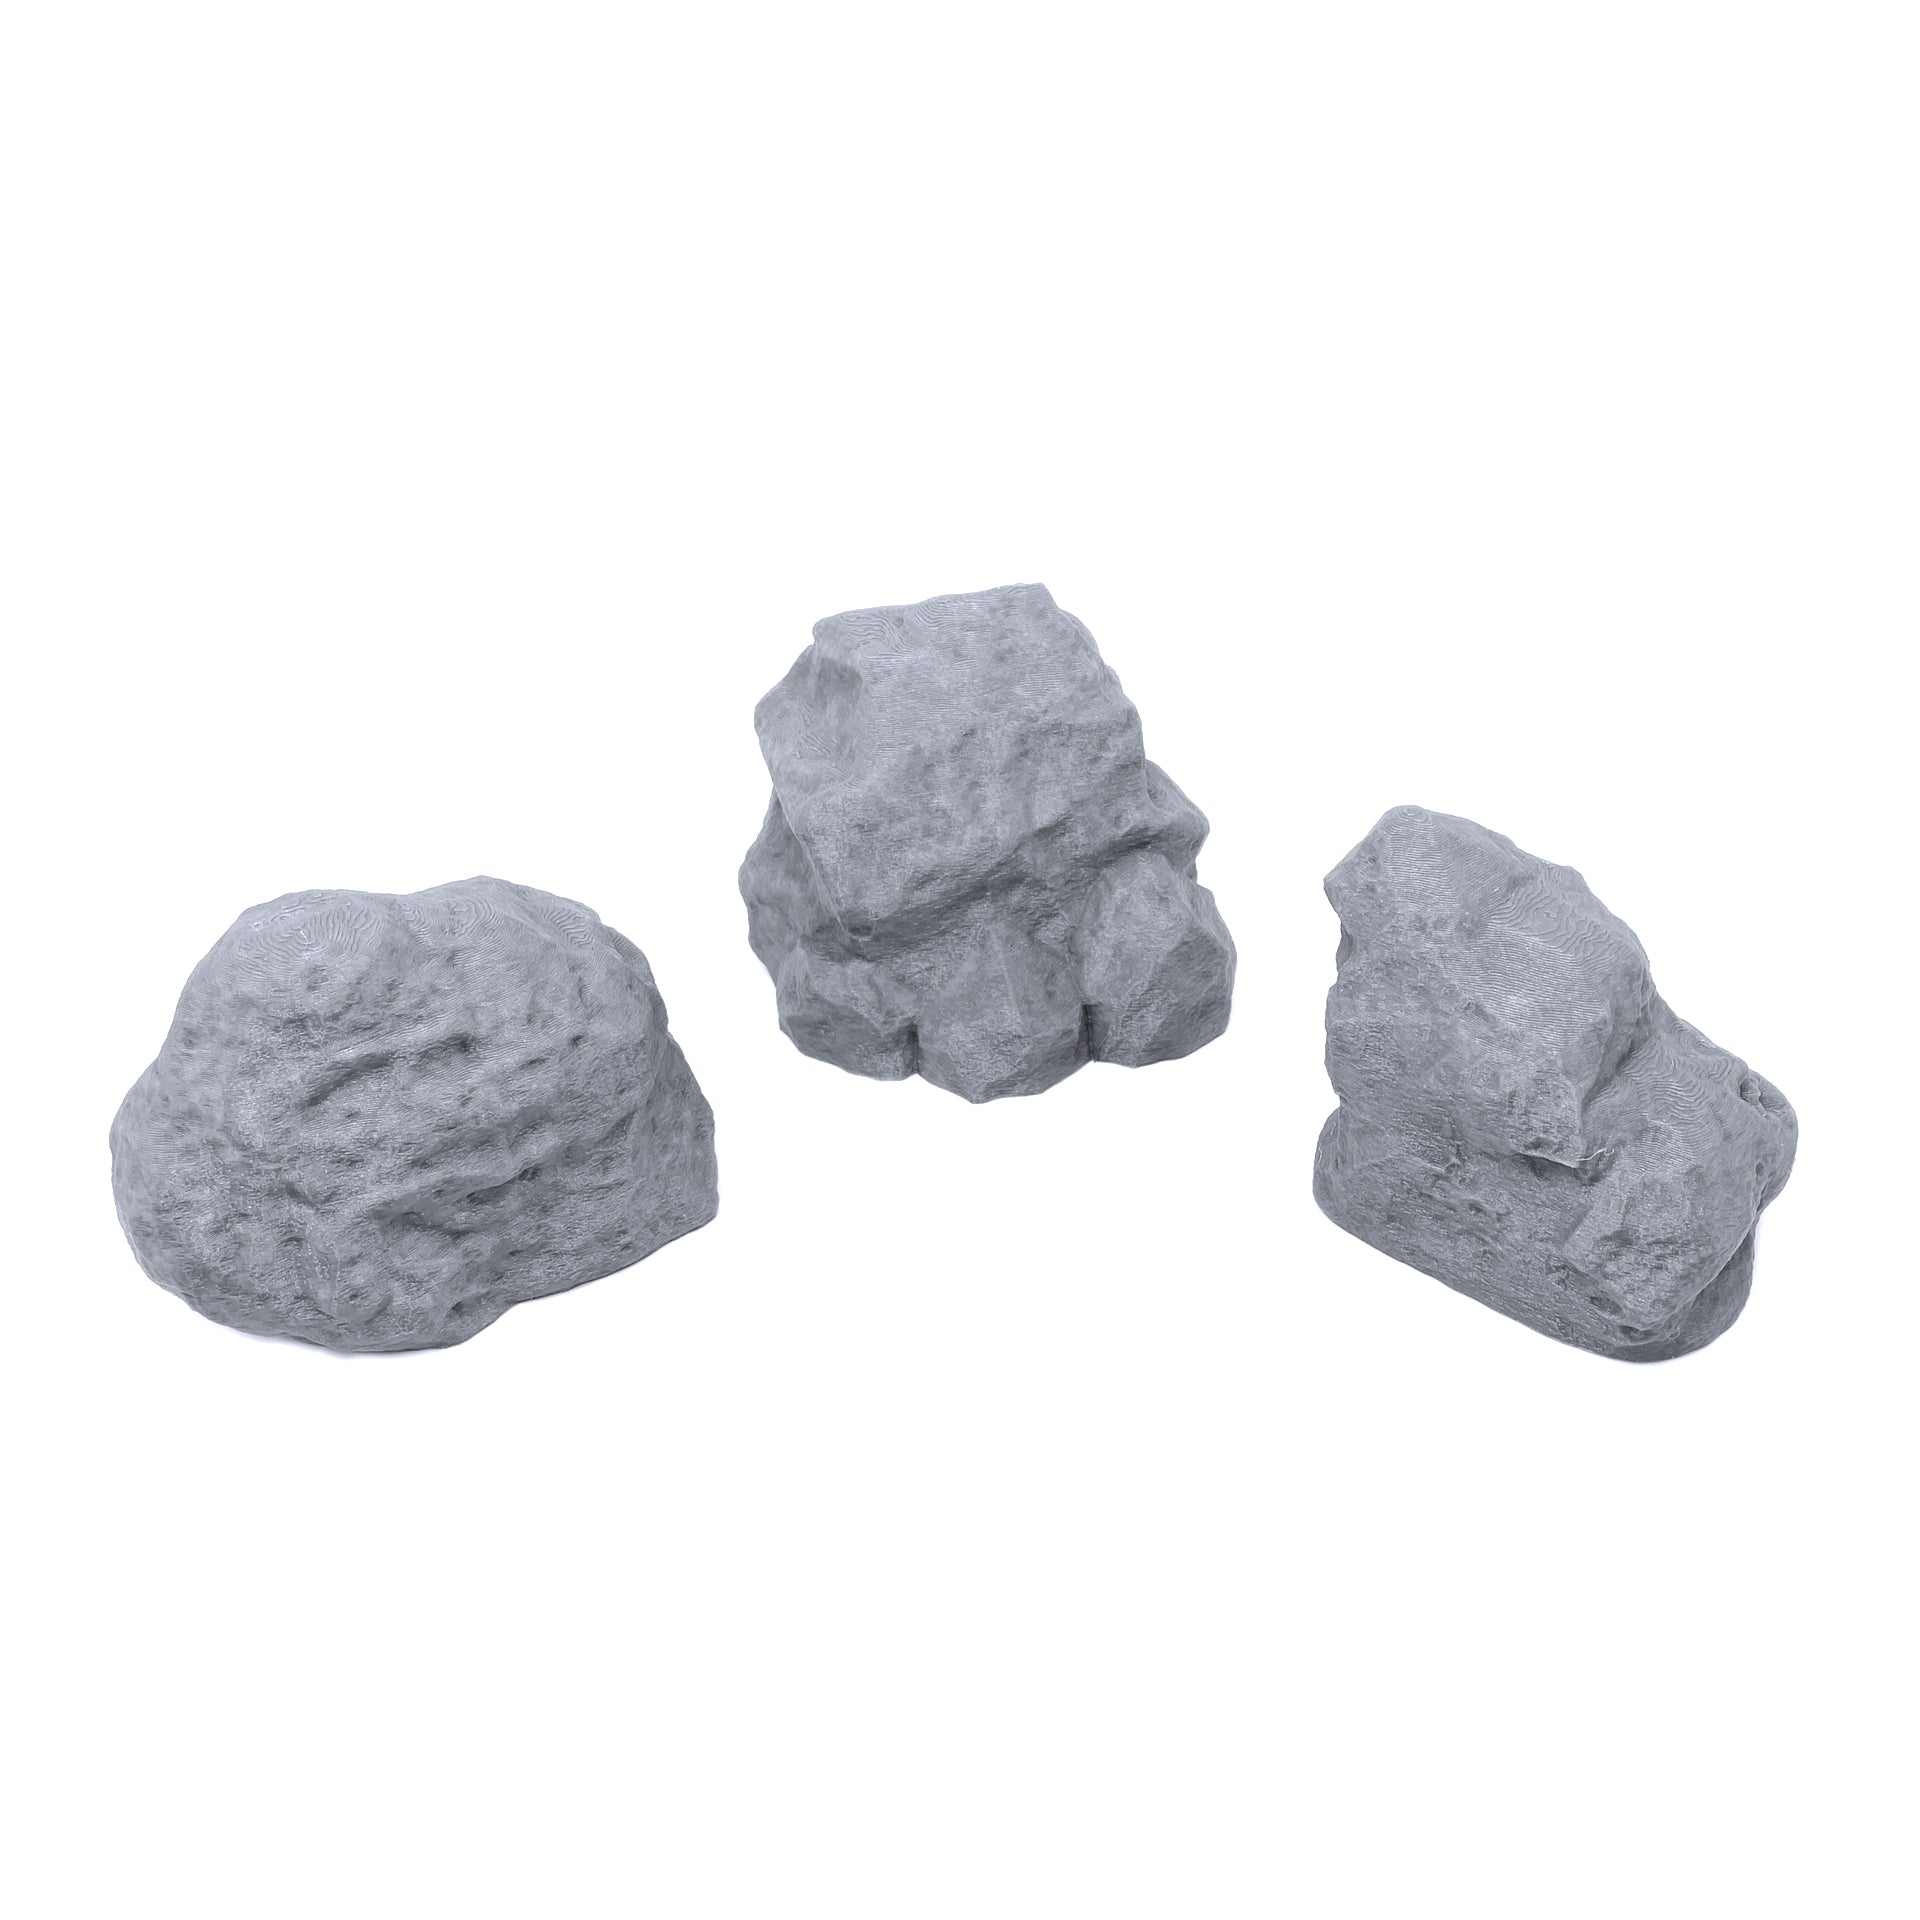 Rounded Rock Formations - EnderToys Terrain